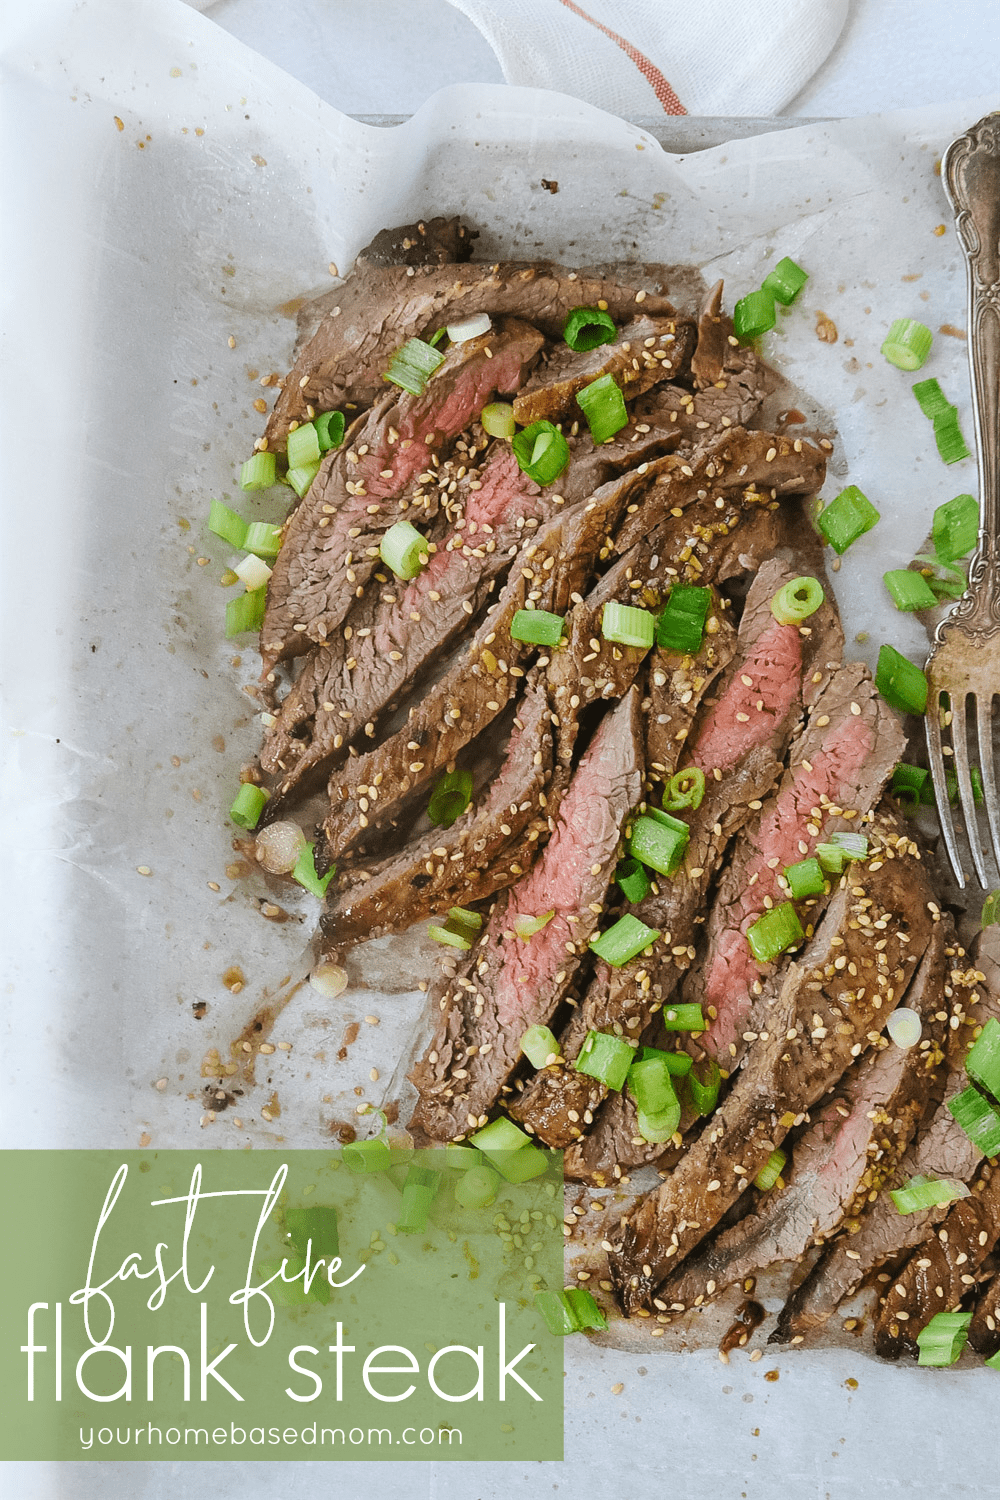 flank steak with green onion on it